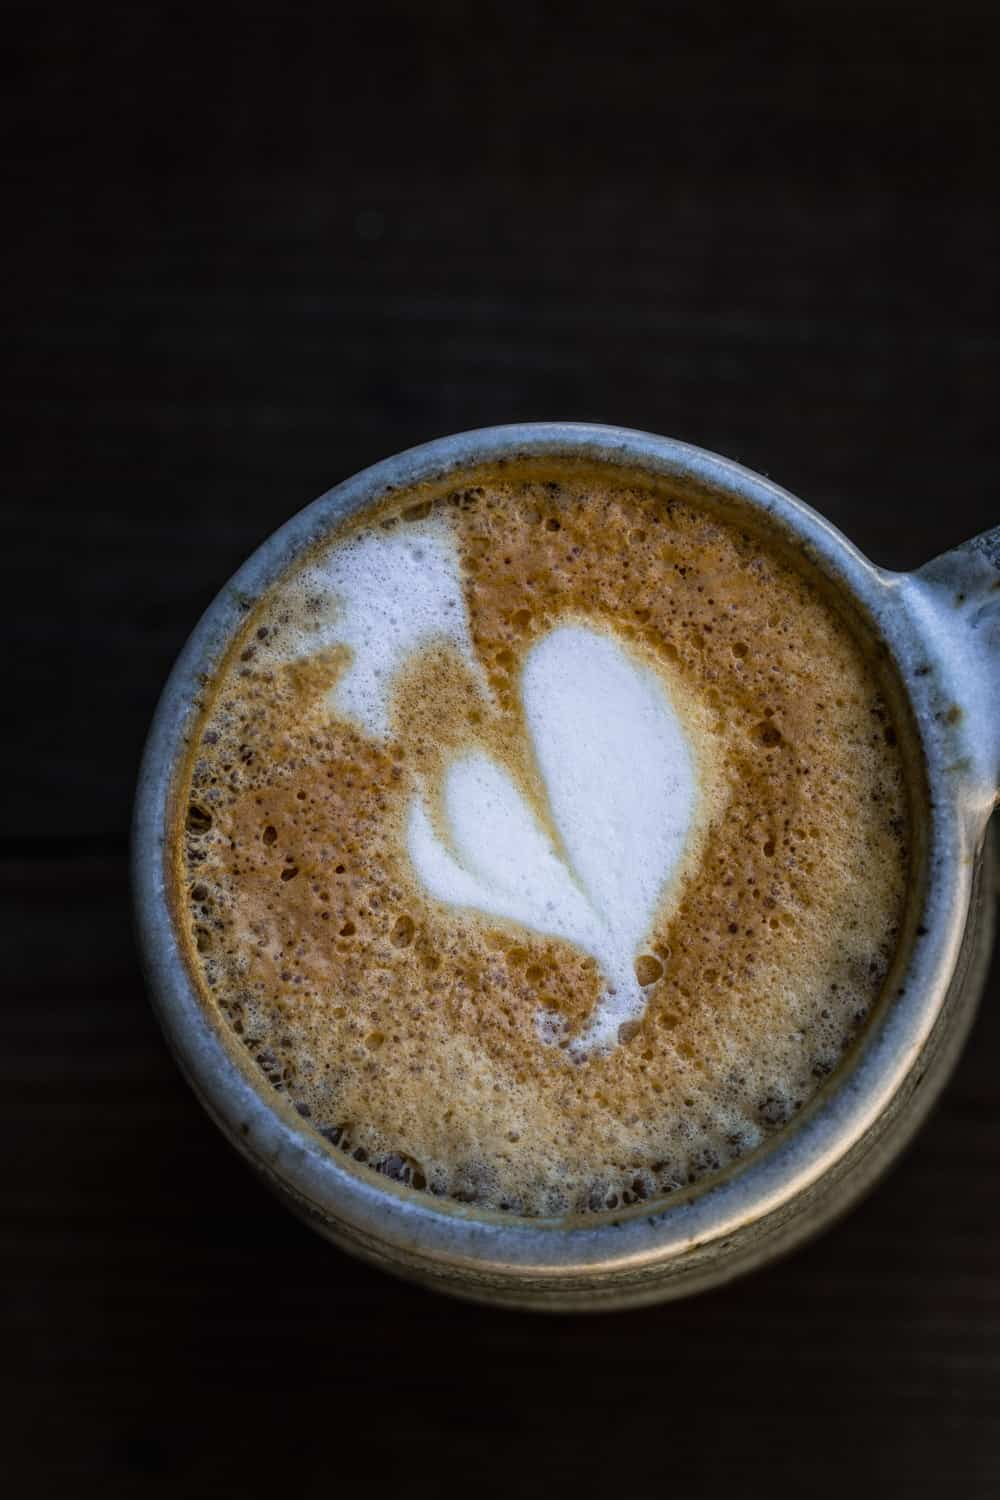 A cappuccino with a foam shaped heart in a ceramic cup.